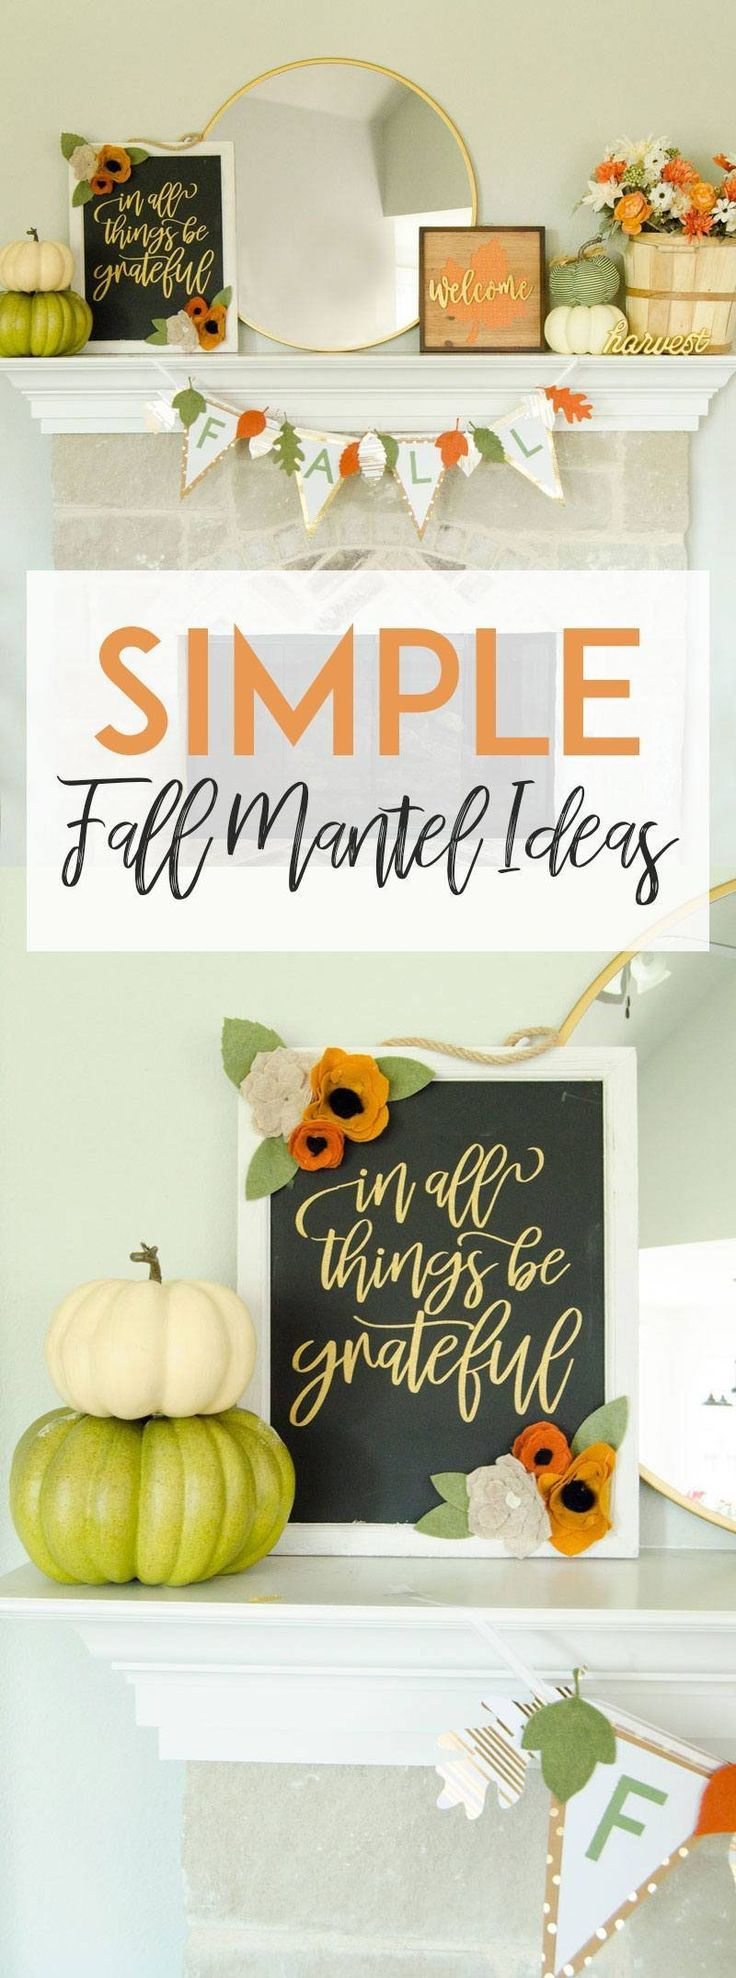 Simple Fall Mantel Ideas with Michaels by